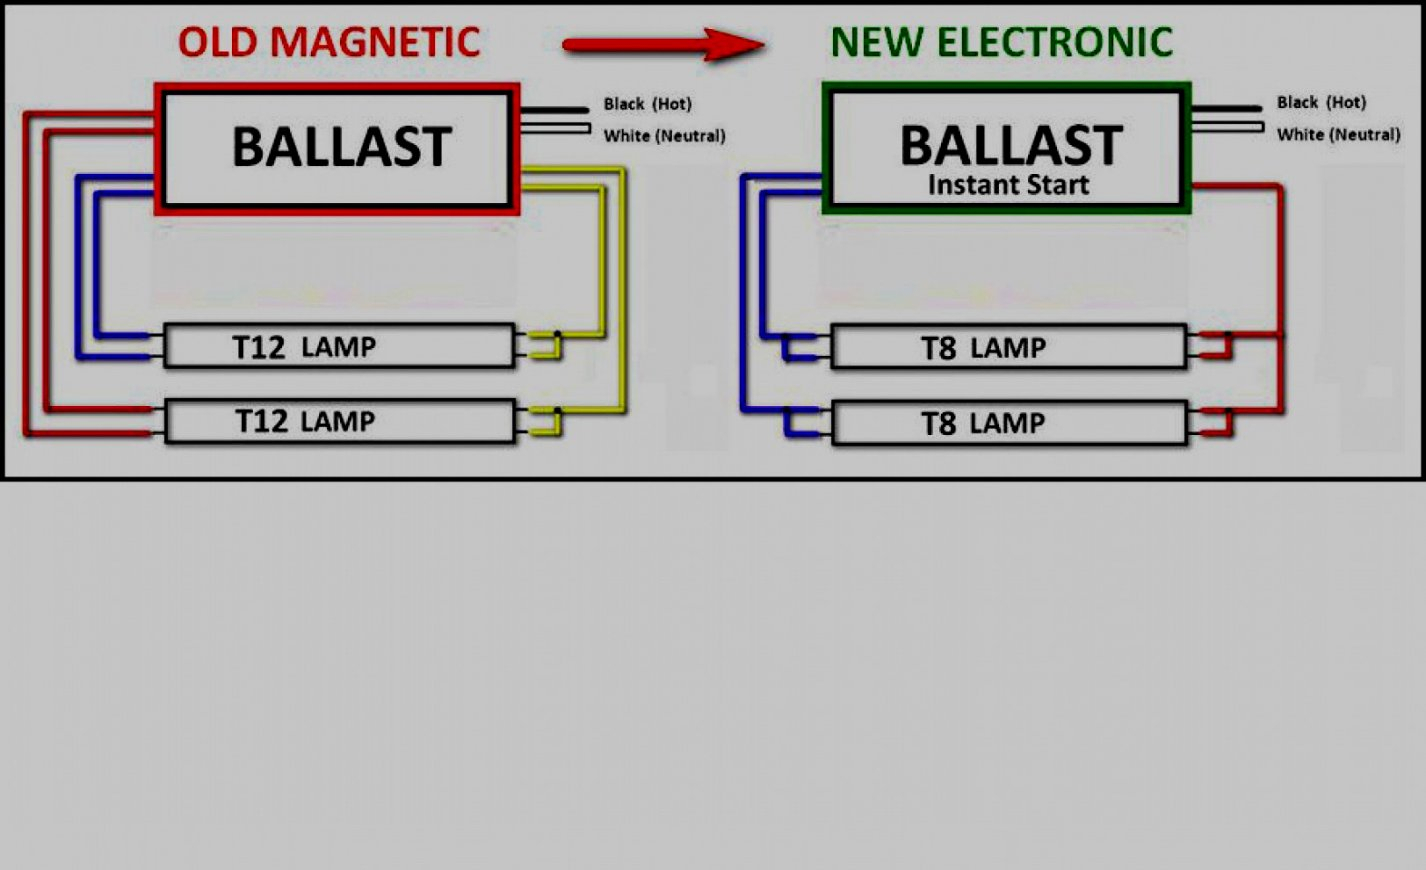 T12 Ballast Wiring Diagram 1 Lamp And 2 Lamp Fluorescent Ballast - 2 - Fluorescent Ballast Wiring Diagram